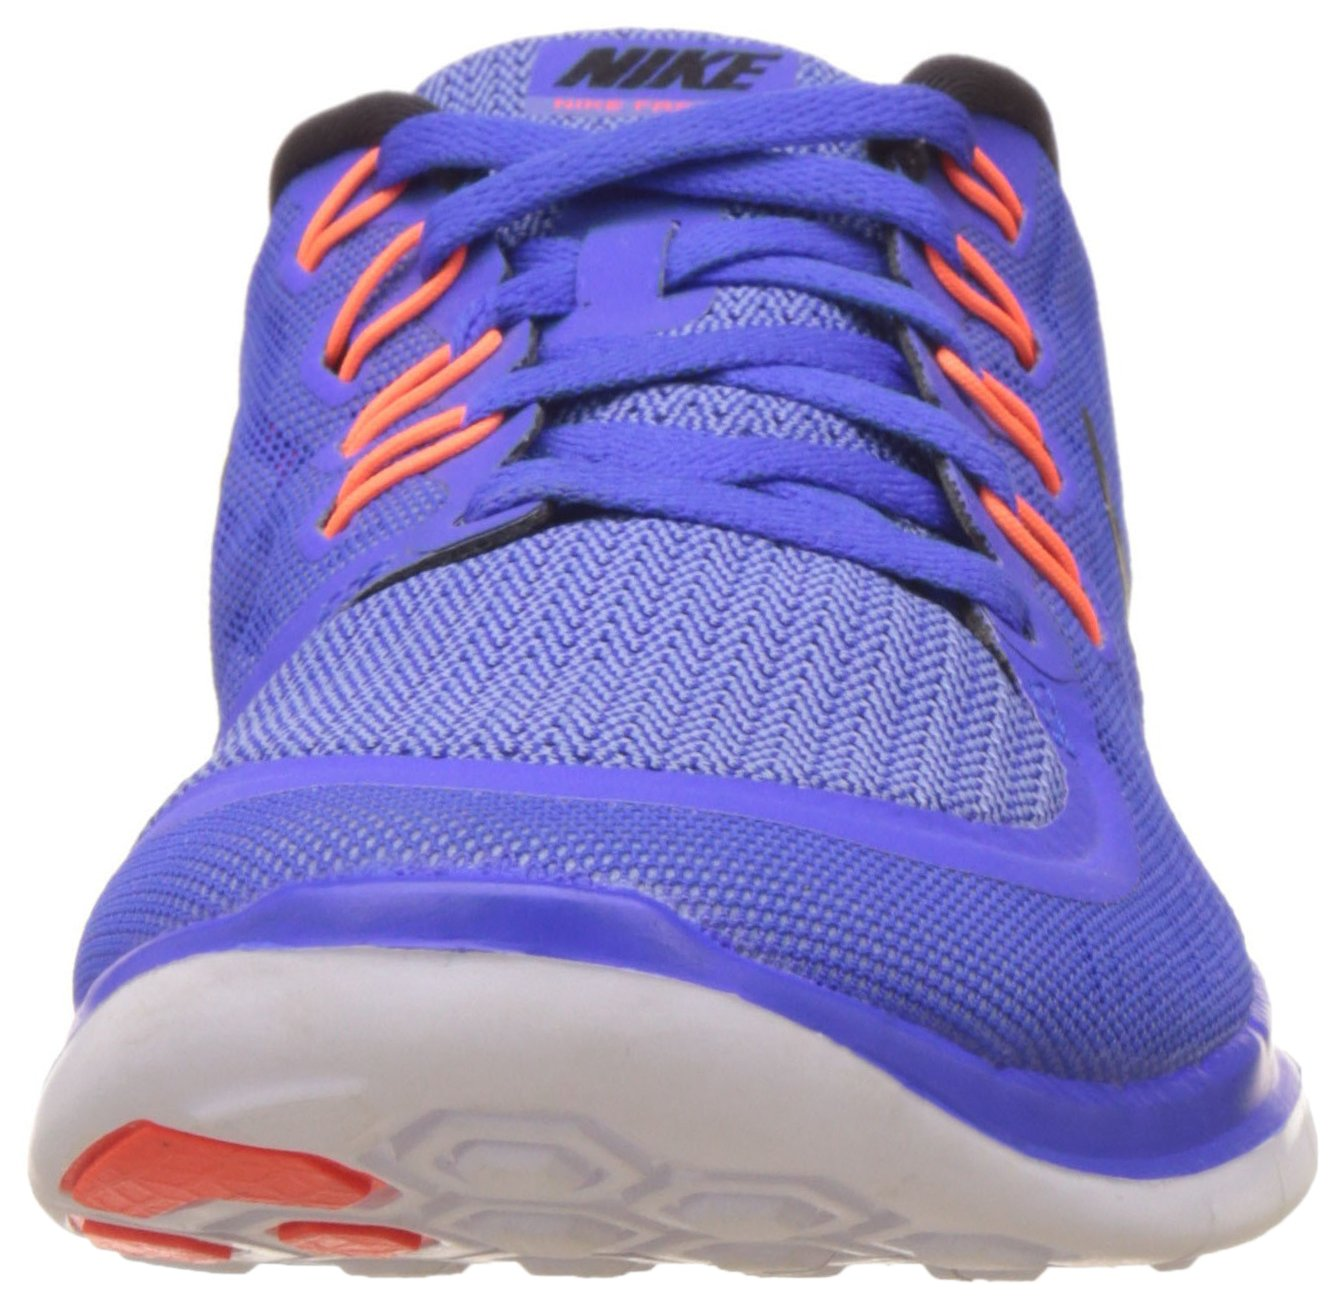 Nike 9 Women's Free Running Shoe B010RSCYQW 9 Nike B(M) US|Racer Blue/Black-chalk Blue-white 2019cf